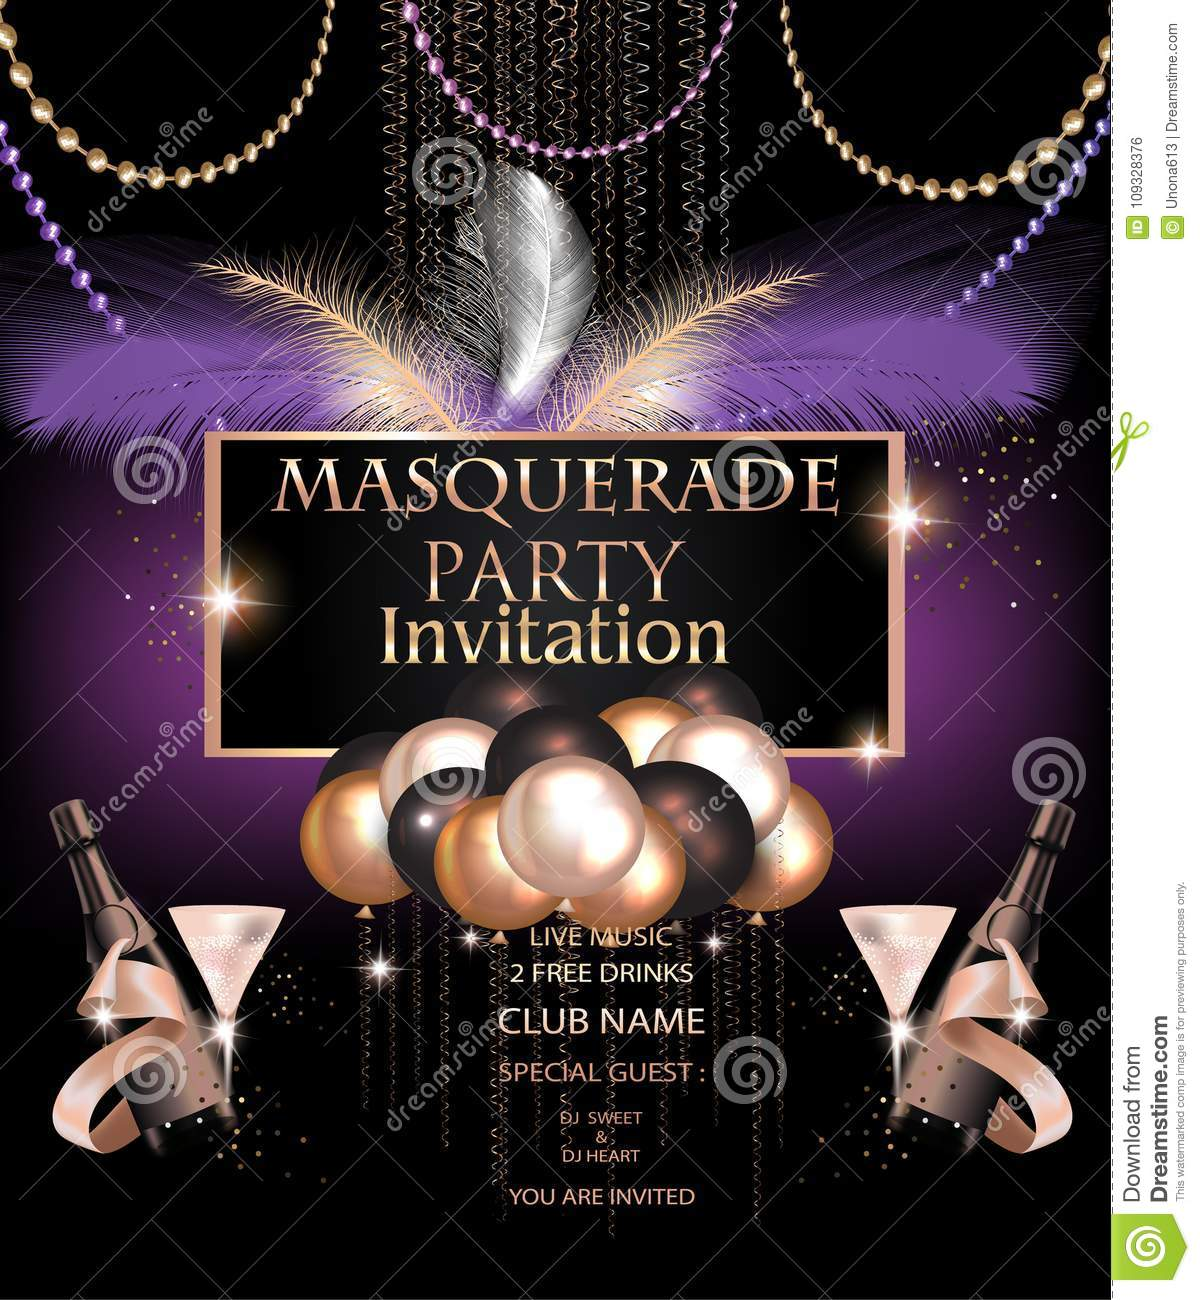 Masquerade Party Invitation Card With Carnival Party Deco Objects